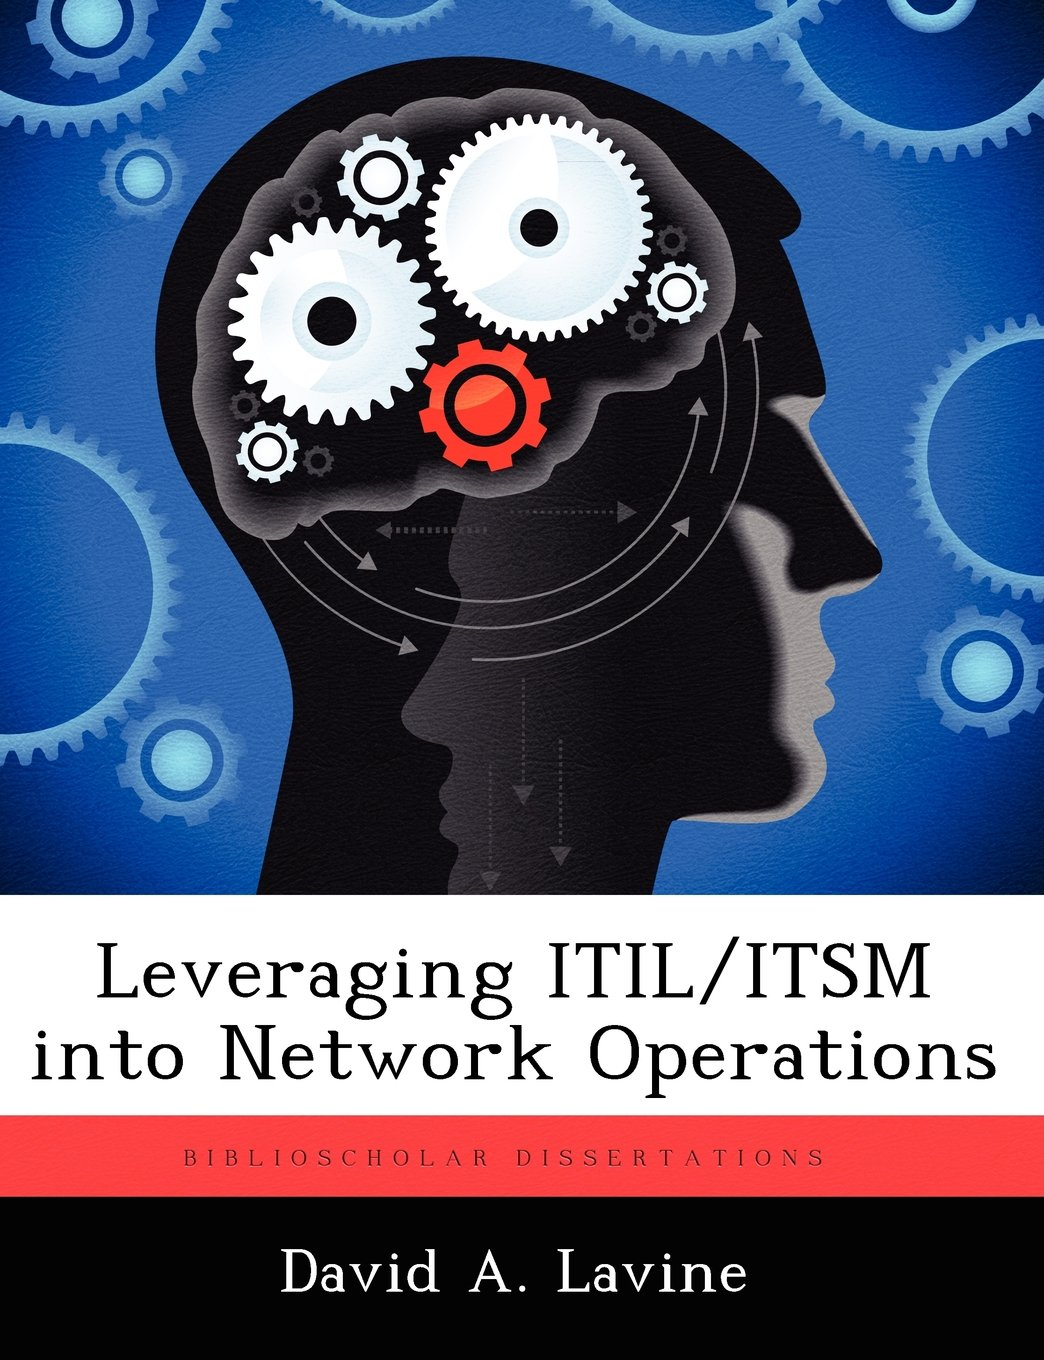 Leveraging ITIL/ITSM into Network Operations pdf